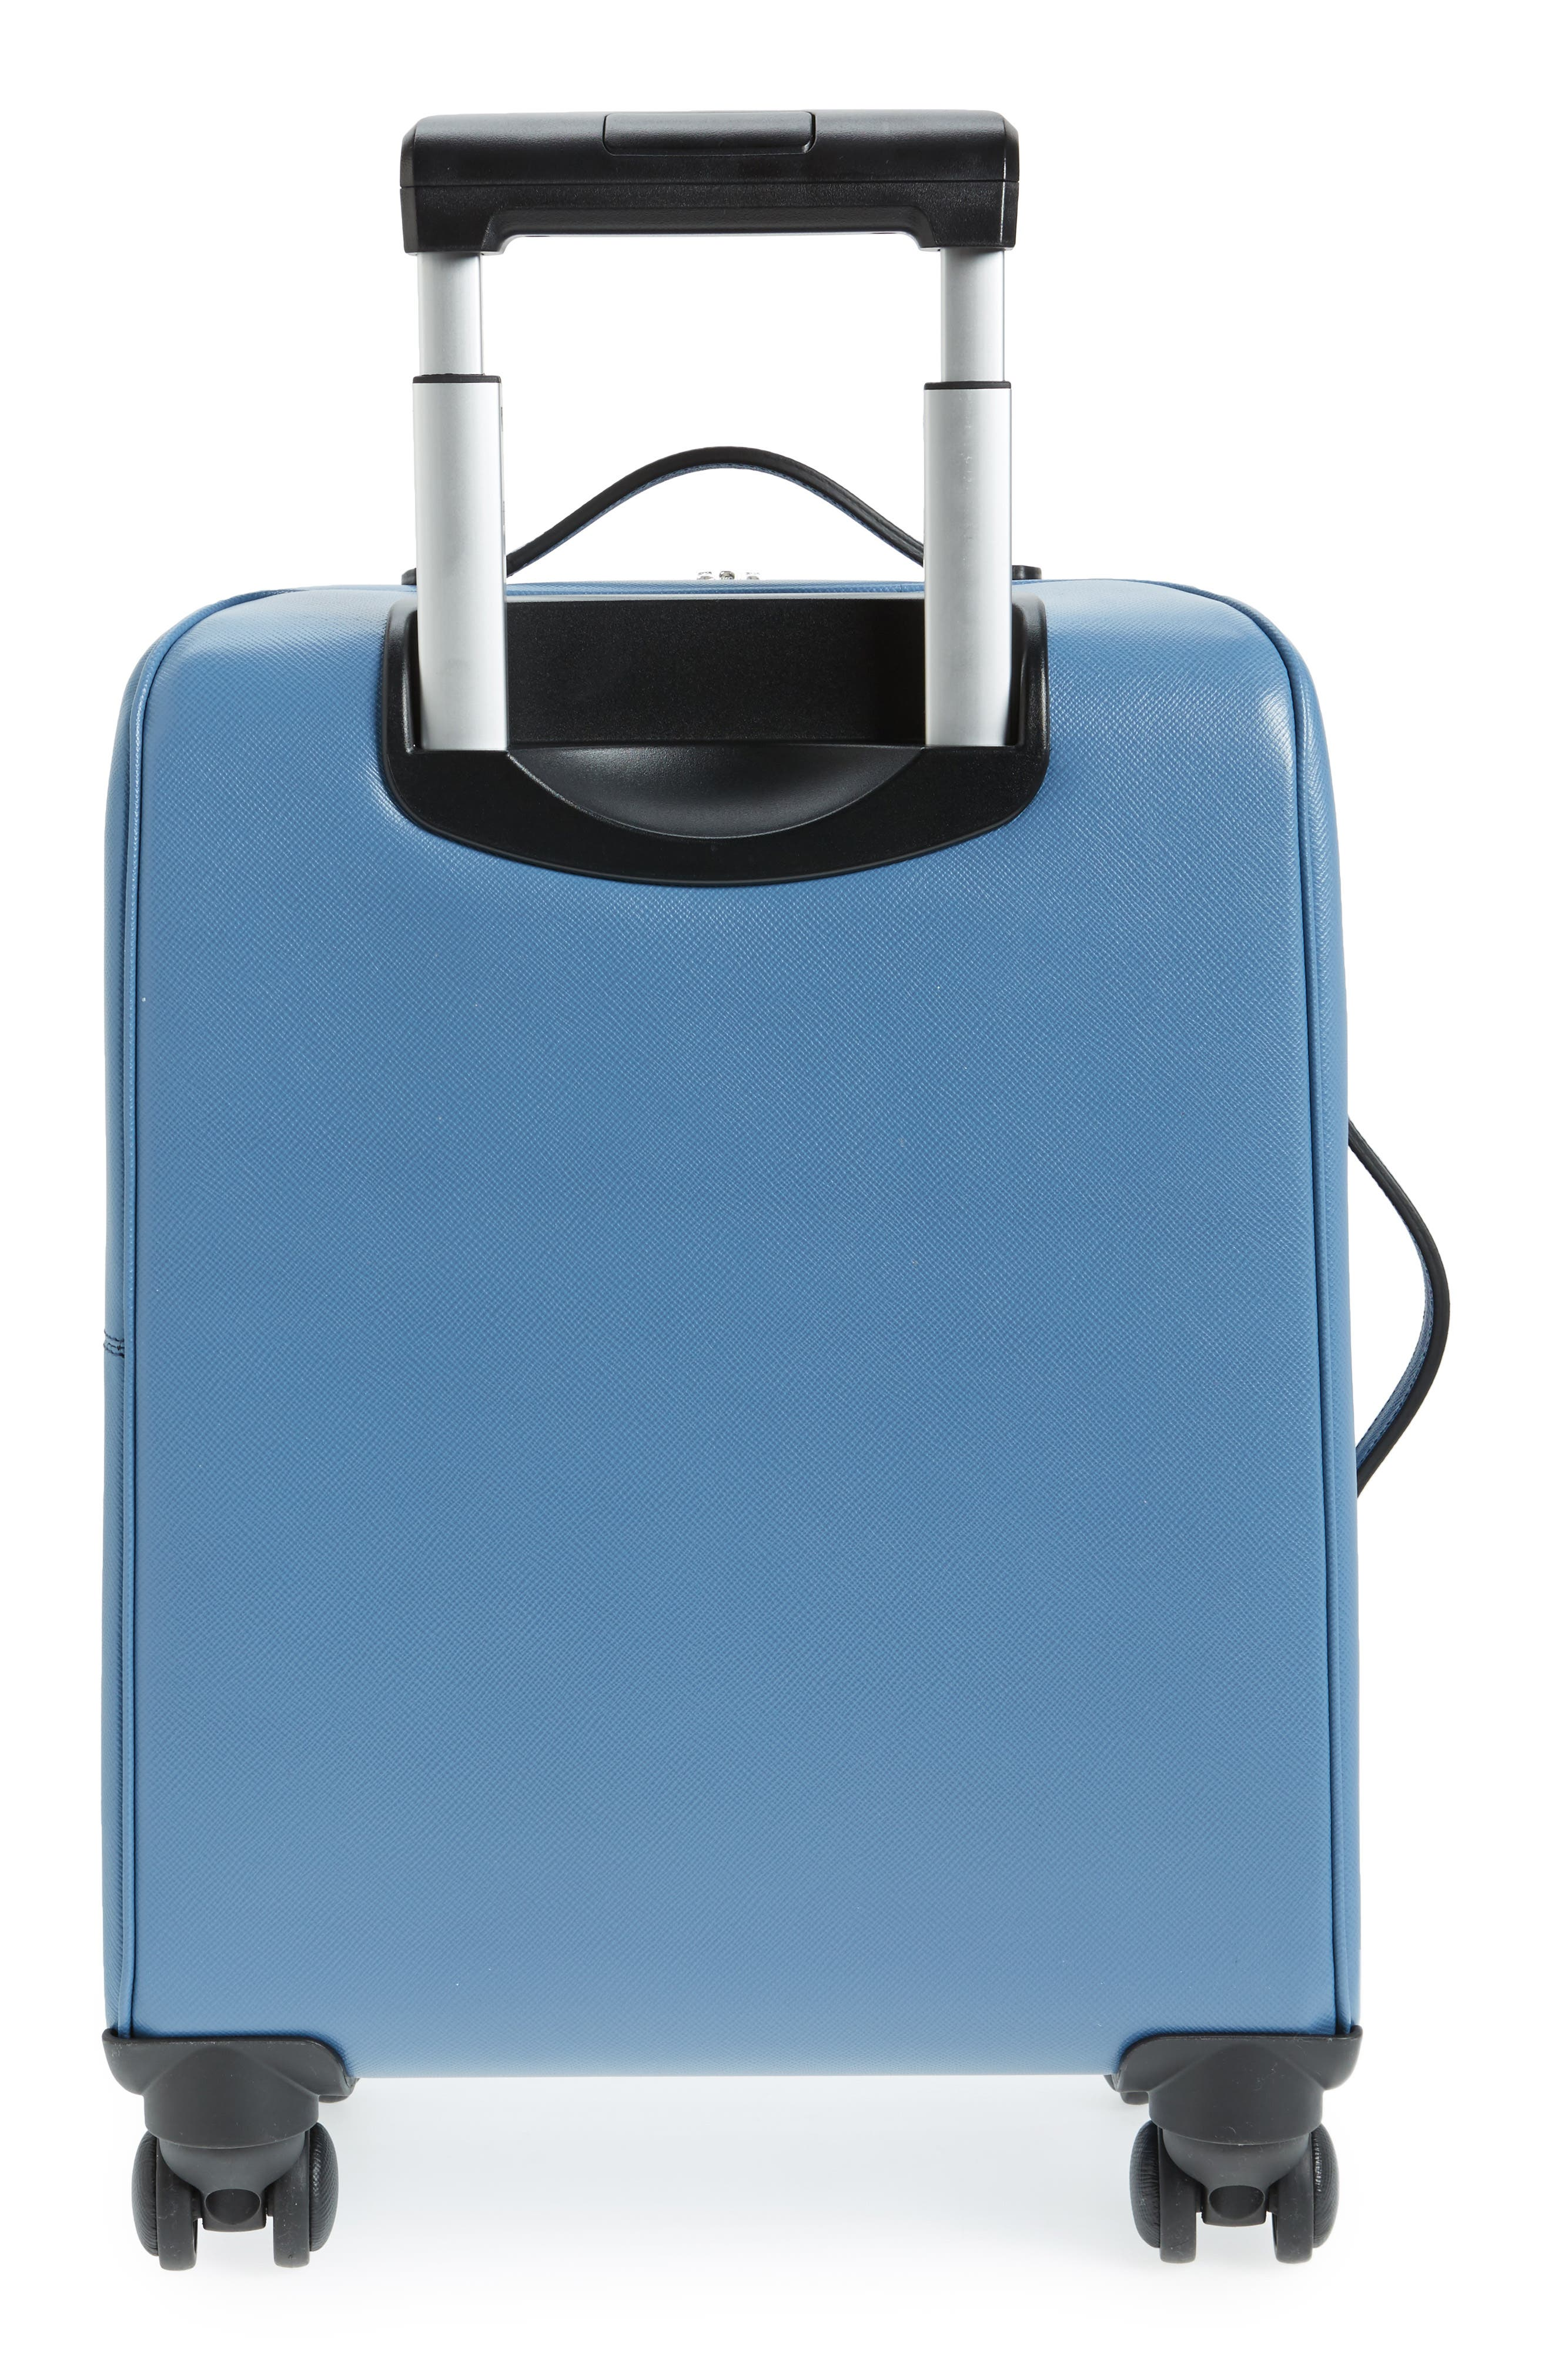 Trolley Spinner Wheeled Carry-On Suitcase,                             Alternate thumbnail 4, color,                             Blue Jeans